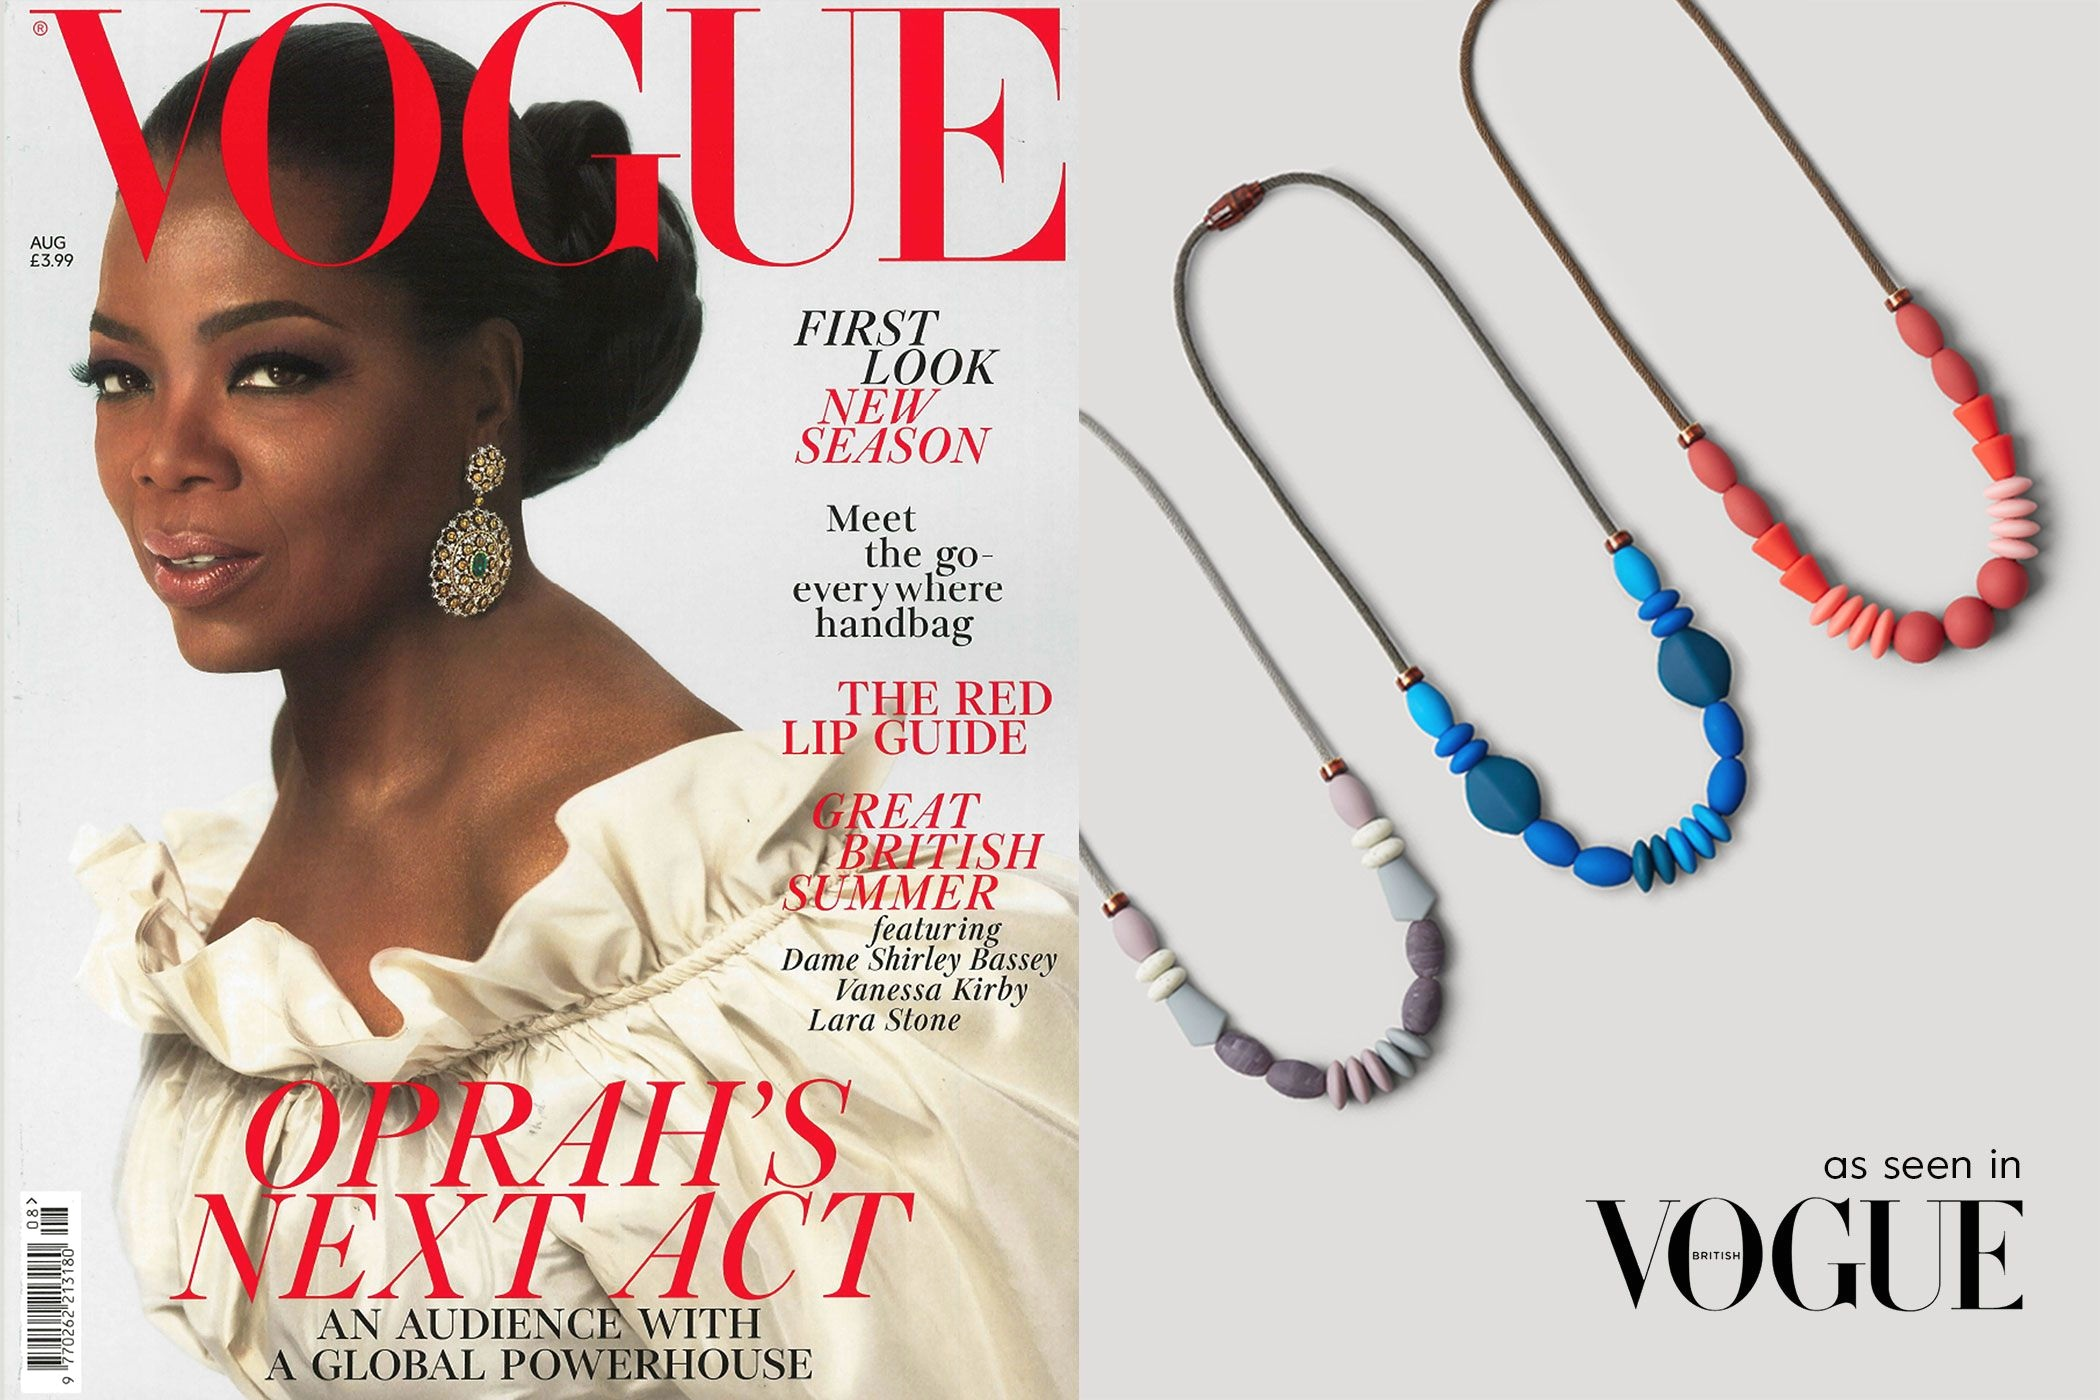 british_vogue_product_feature_image